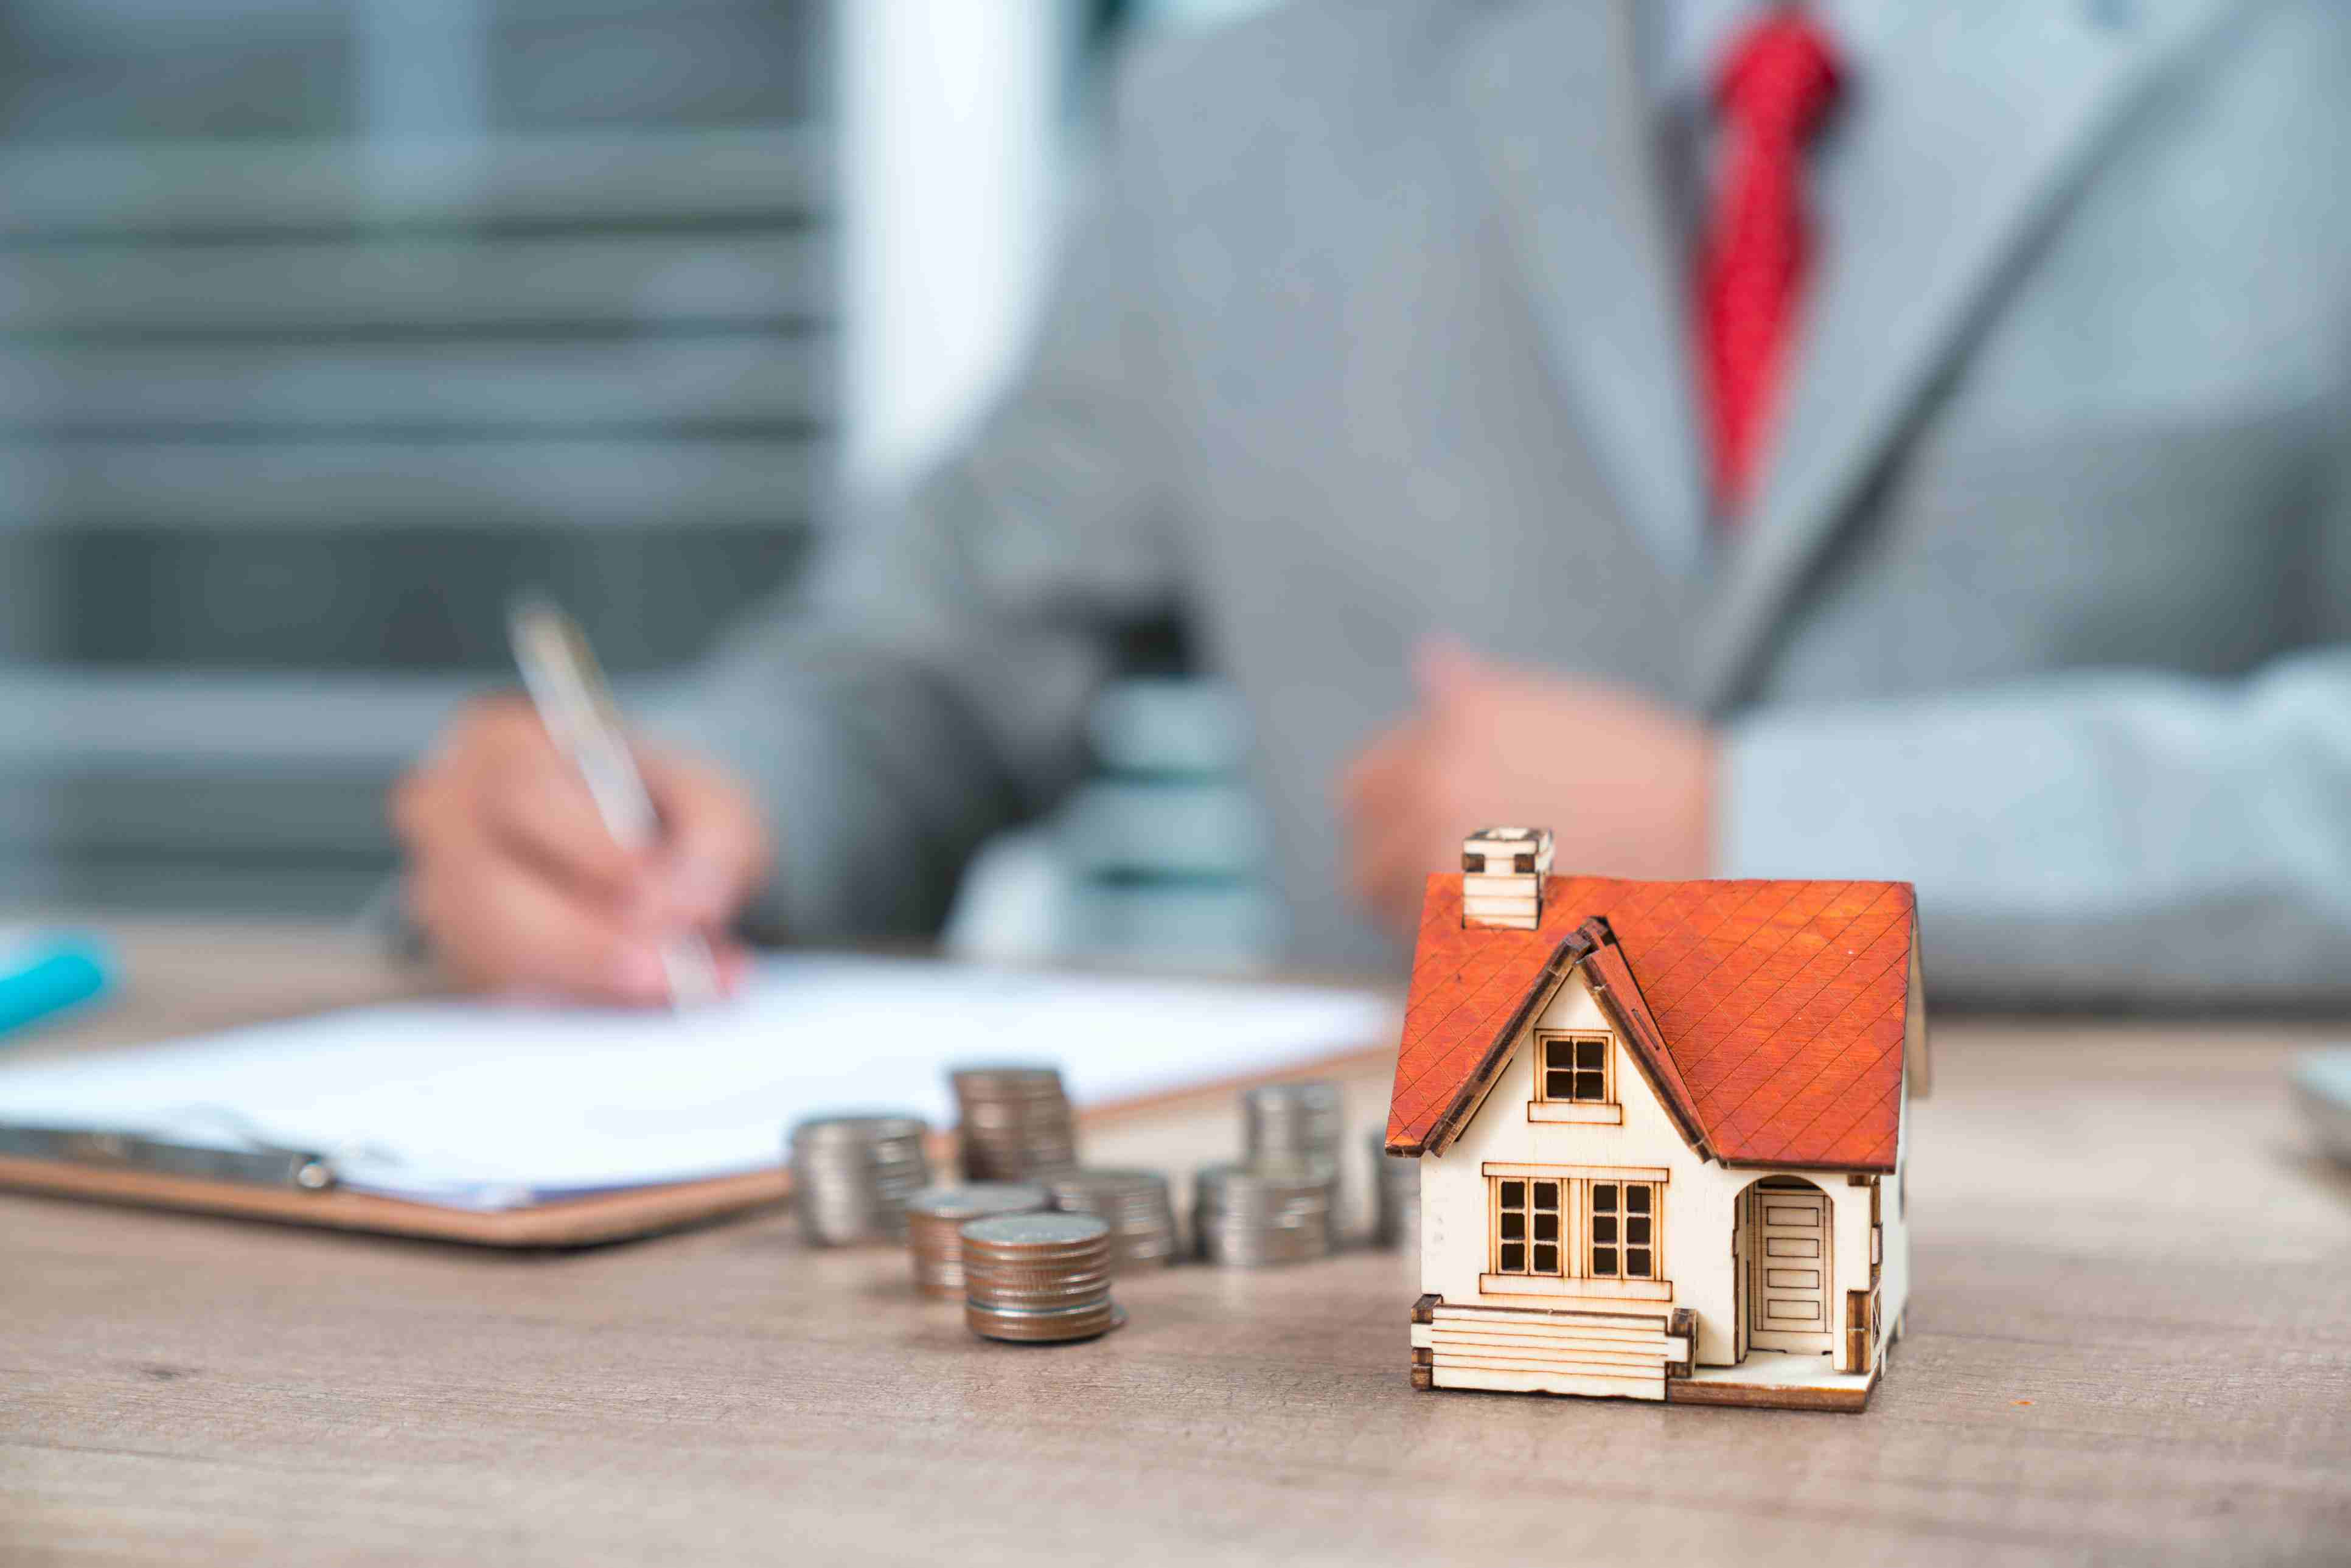 Man making a real estate investment